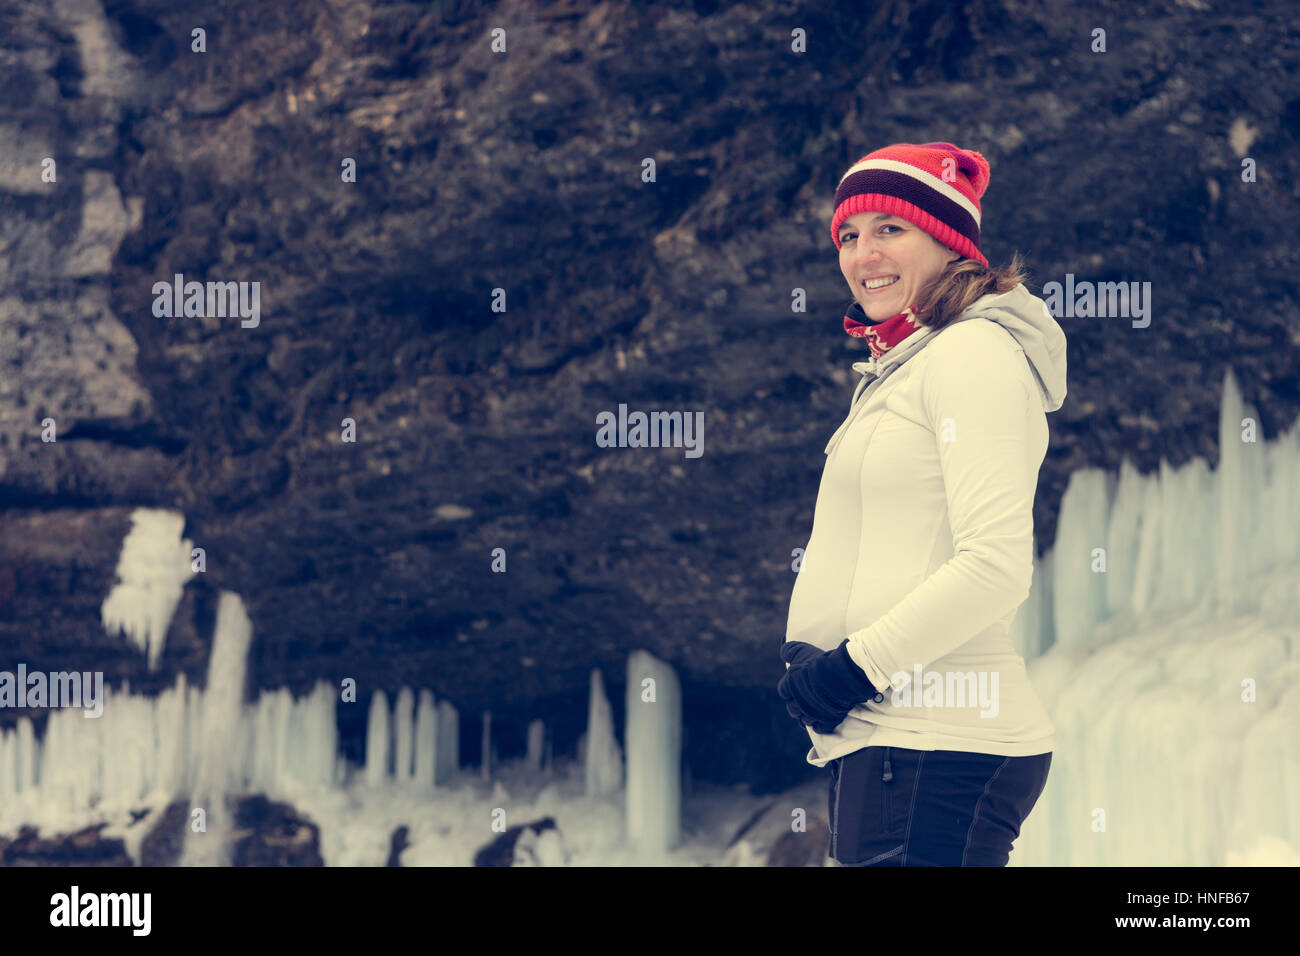 Young pregnant woman smiling on winter landscape. - Stock Image